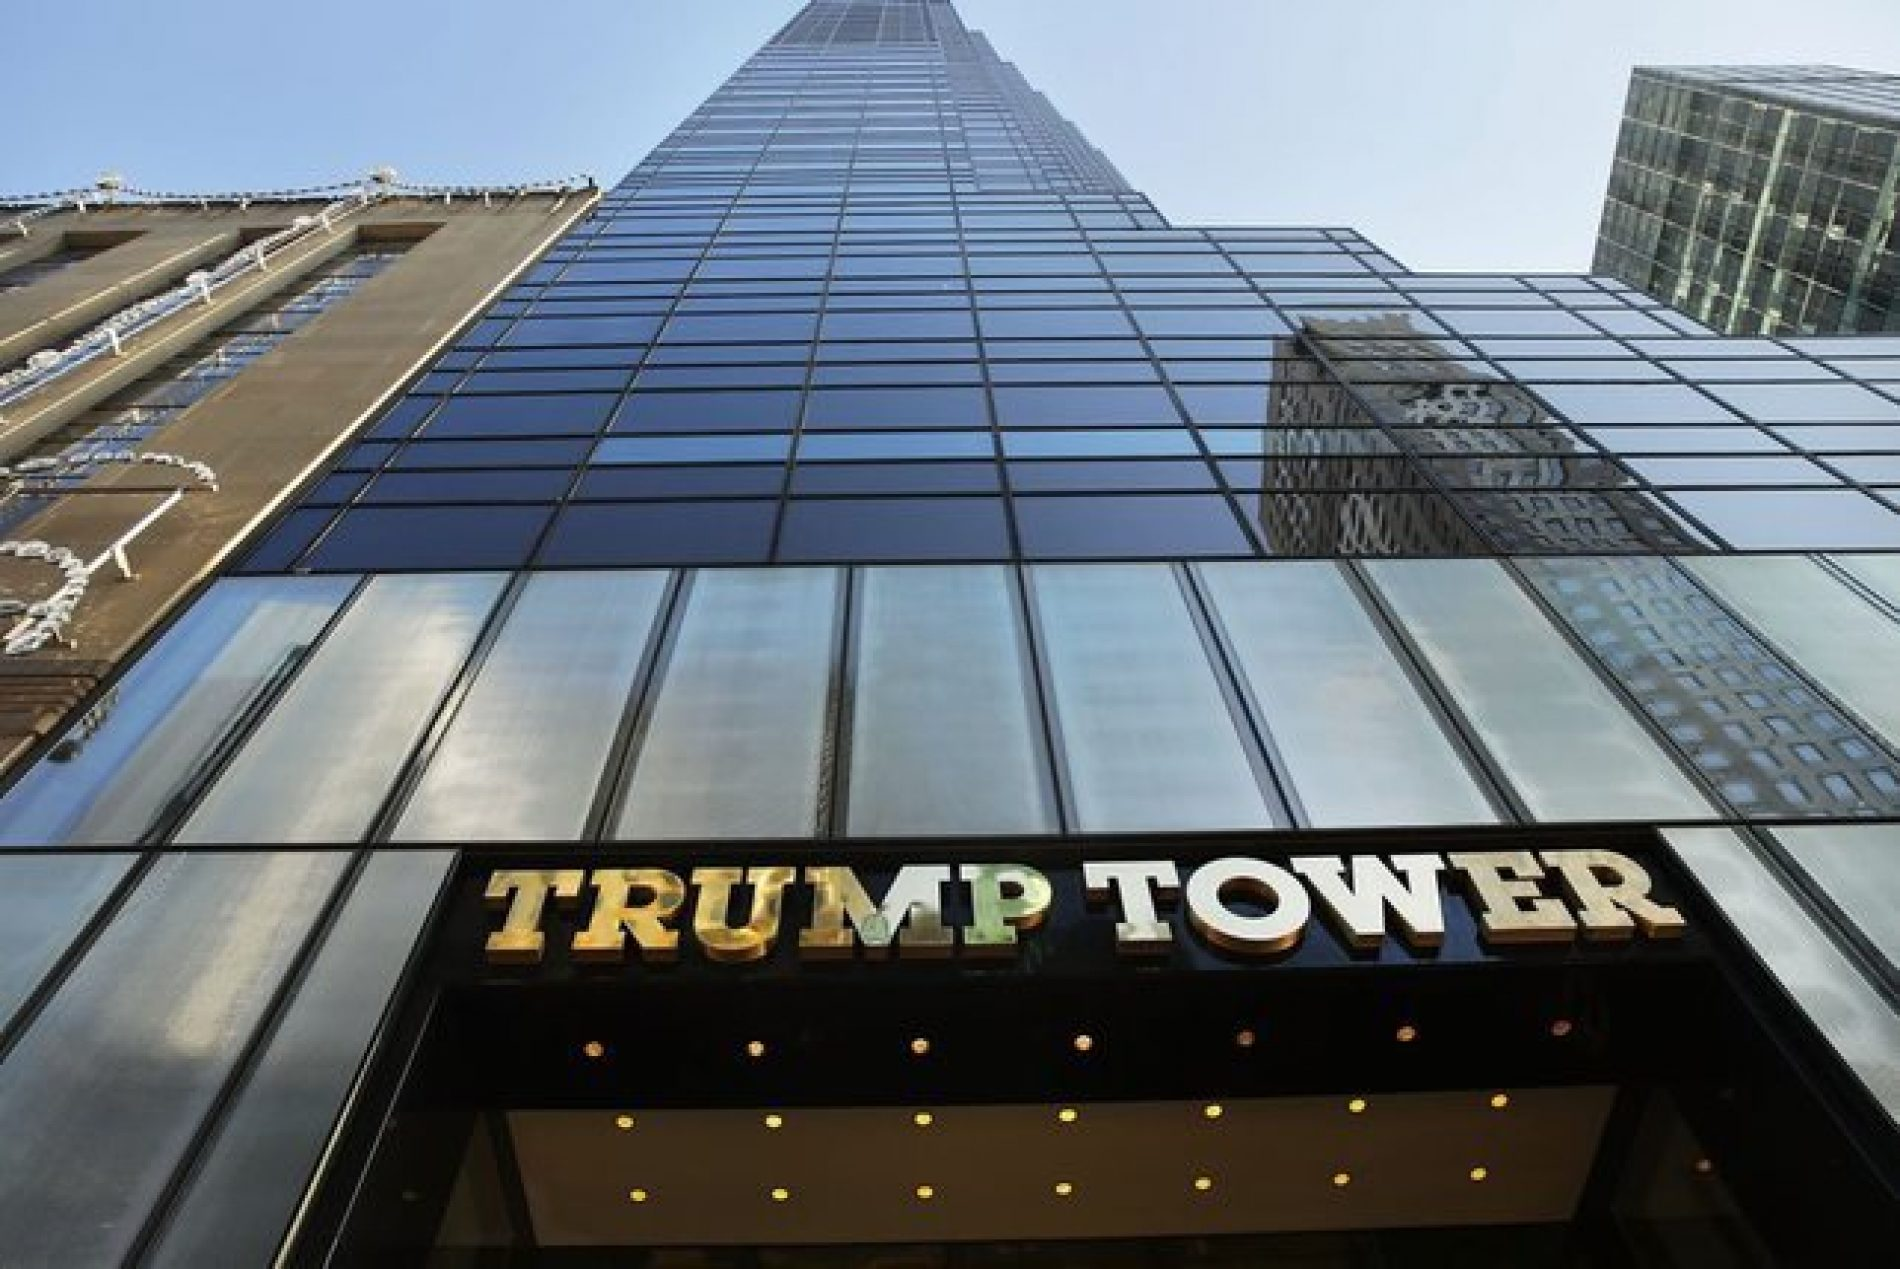 New-York: Le maire souhaite peindre « Black Lives Matter » devant la Trump Tower